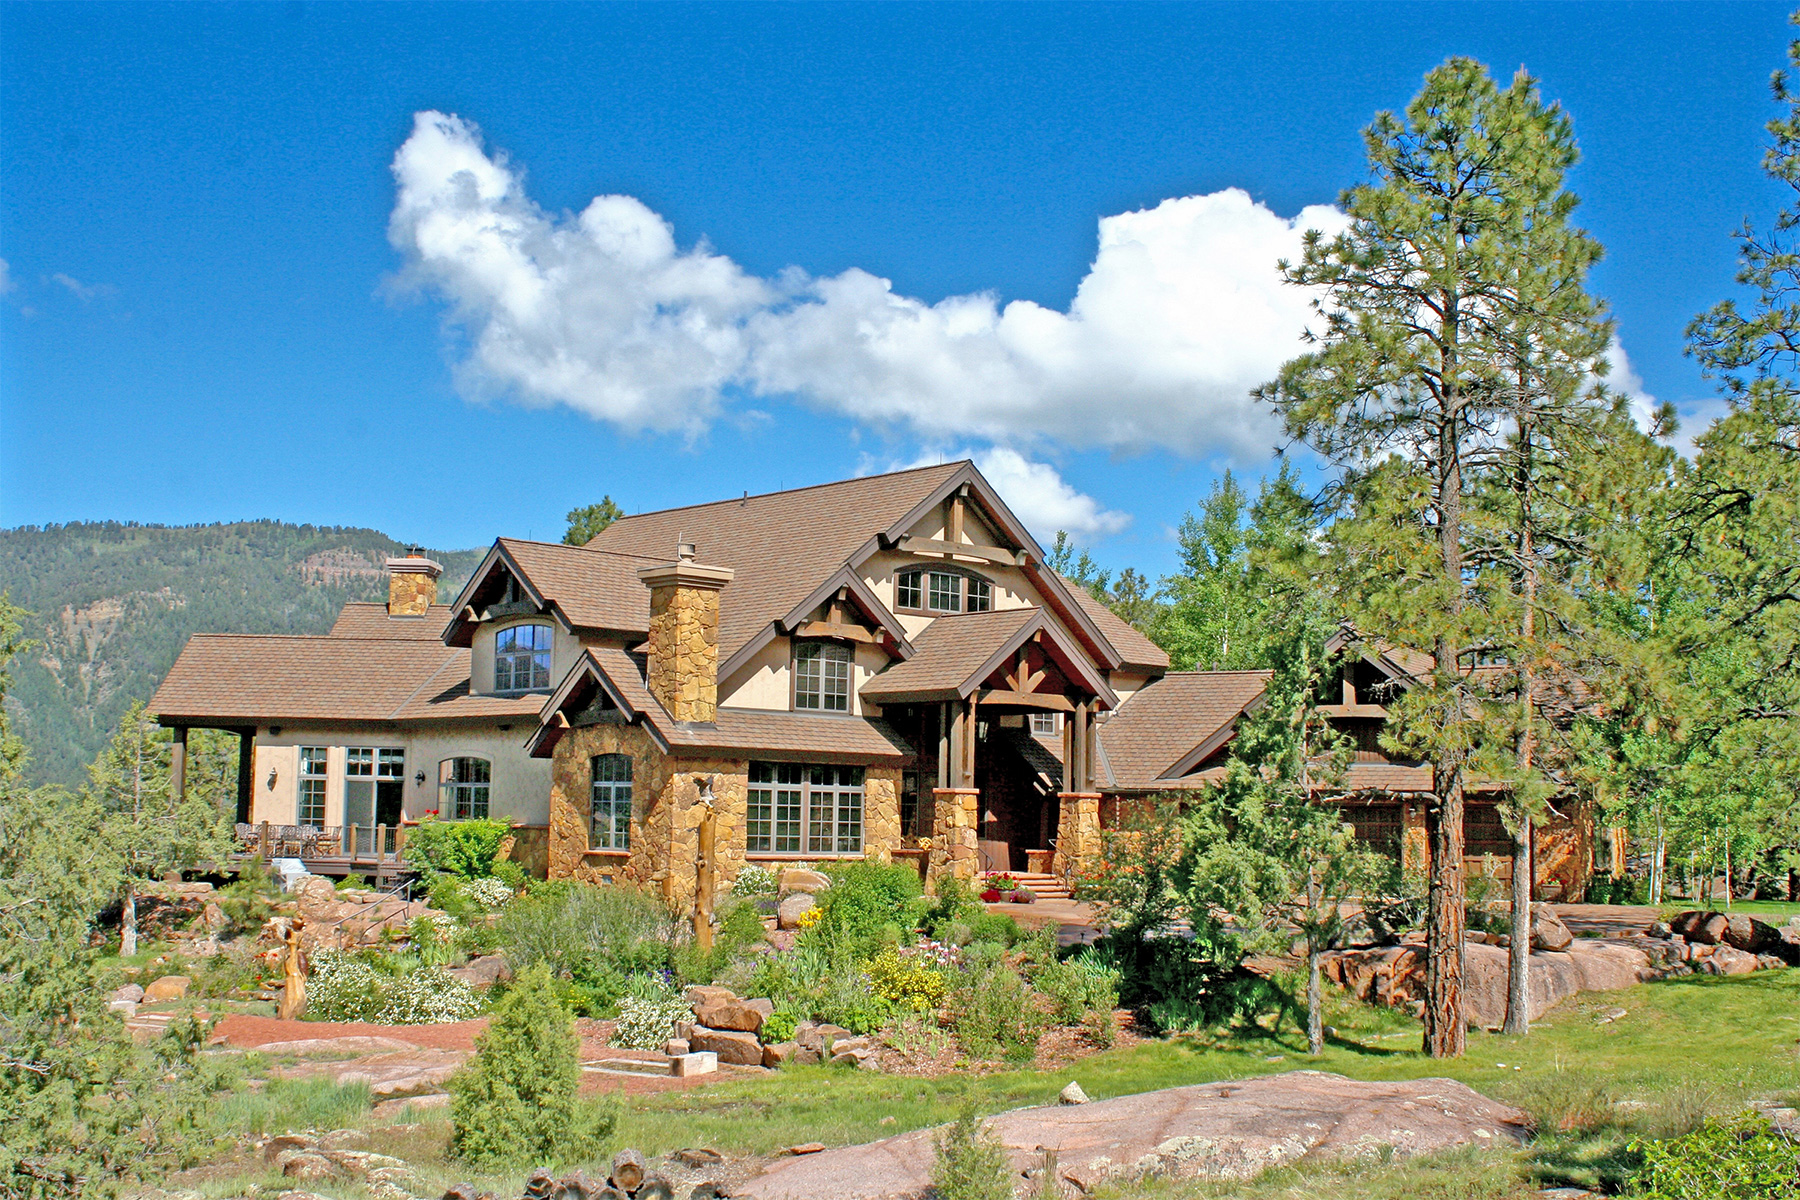 Single Family Home for Sale at Granite Fall Lodge 1501 Celadon Drive East Durango, Colorado, 81301 United States